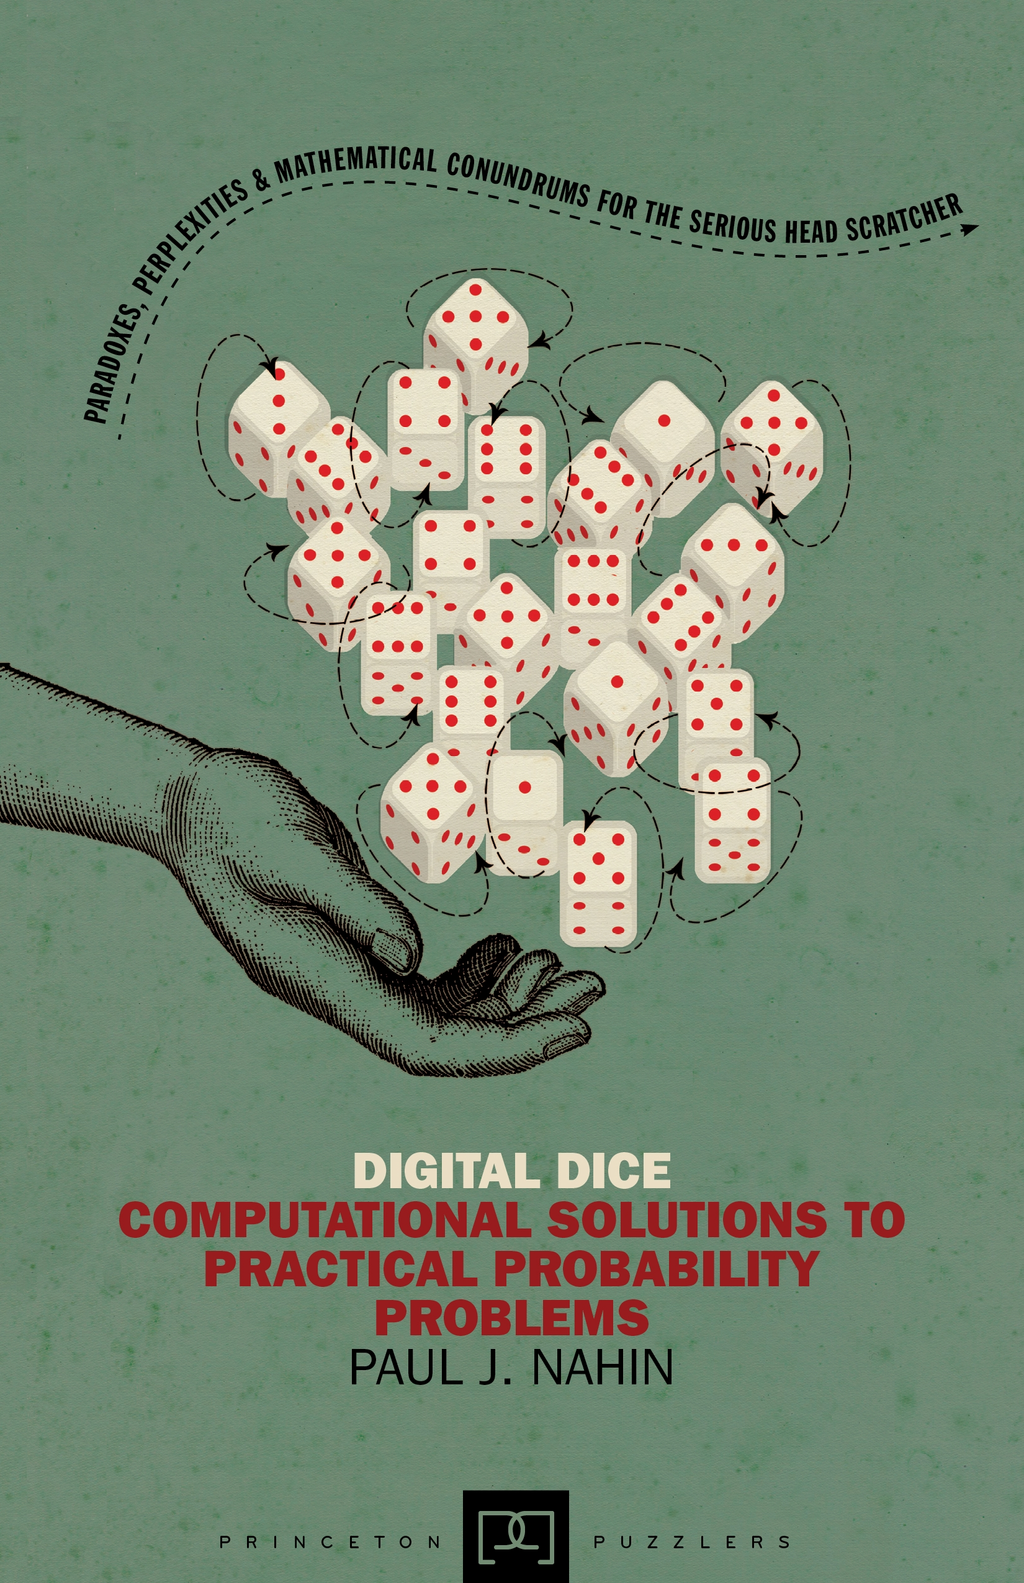 Digital Dice Computational Solutions to Practical Probability Problems (New in Paperback)